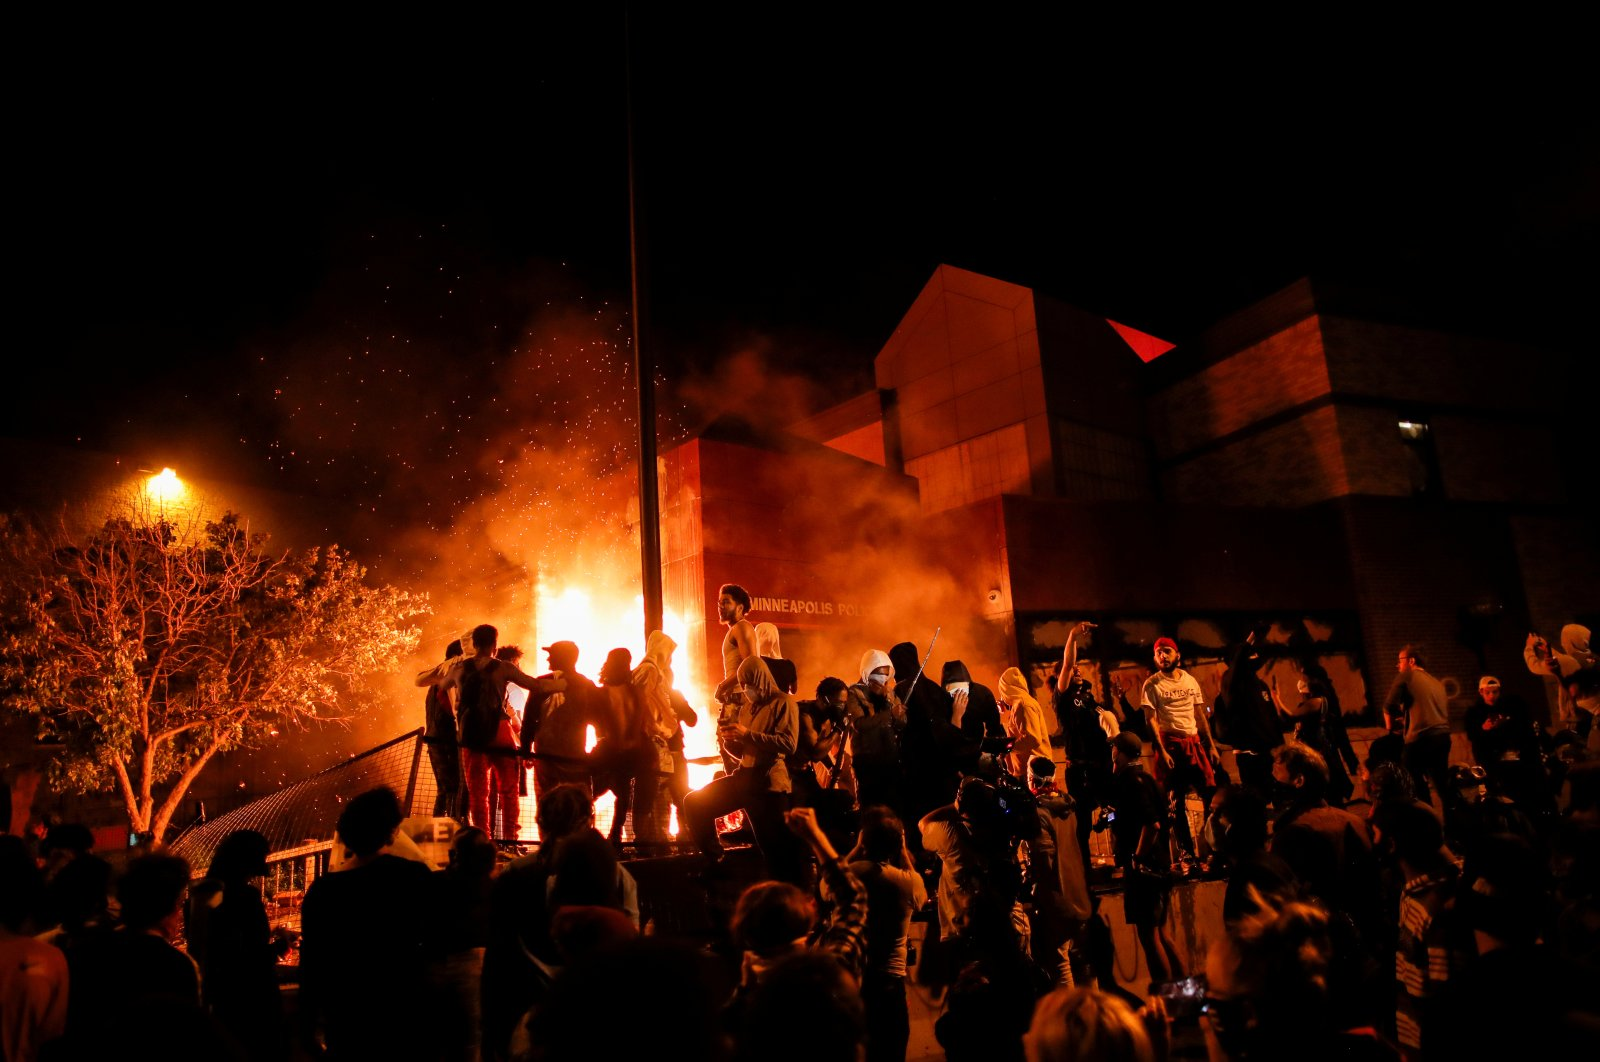 Protesters gather around after setting fire to the entrance of a police station as demonstrations continue after a white police officer was caught on a bystander's video pressing his knee into the neck of African-American man George Floyd, who later died at a hospital, in Minneapolis, Minn., May 28, 2020. (Reuters Photo)